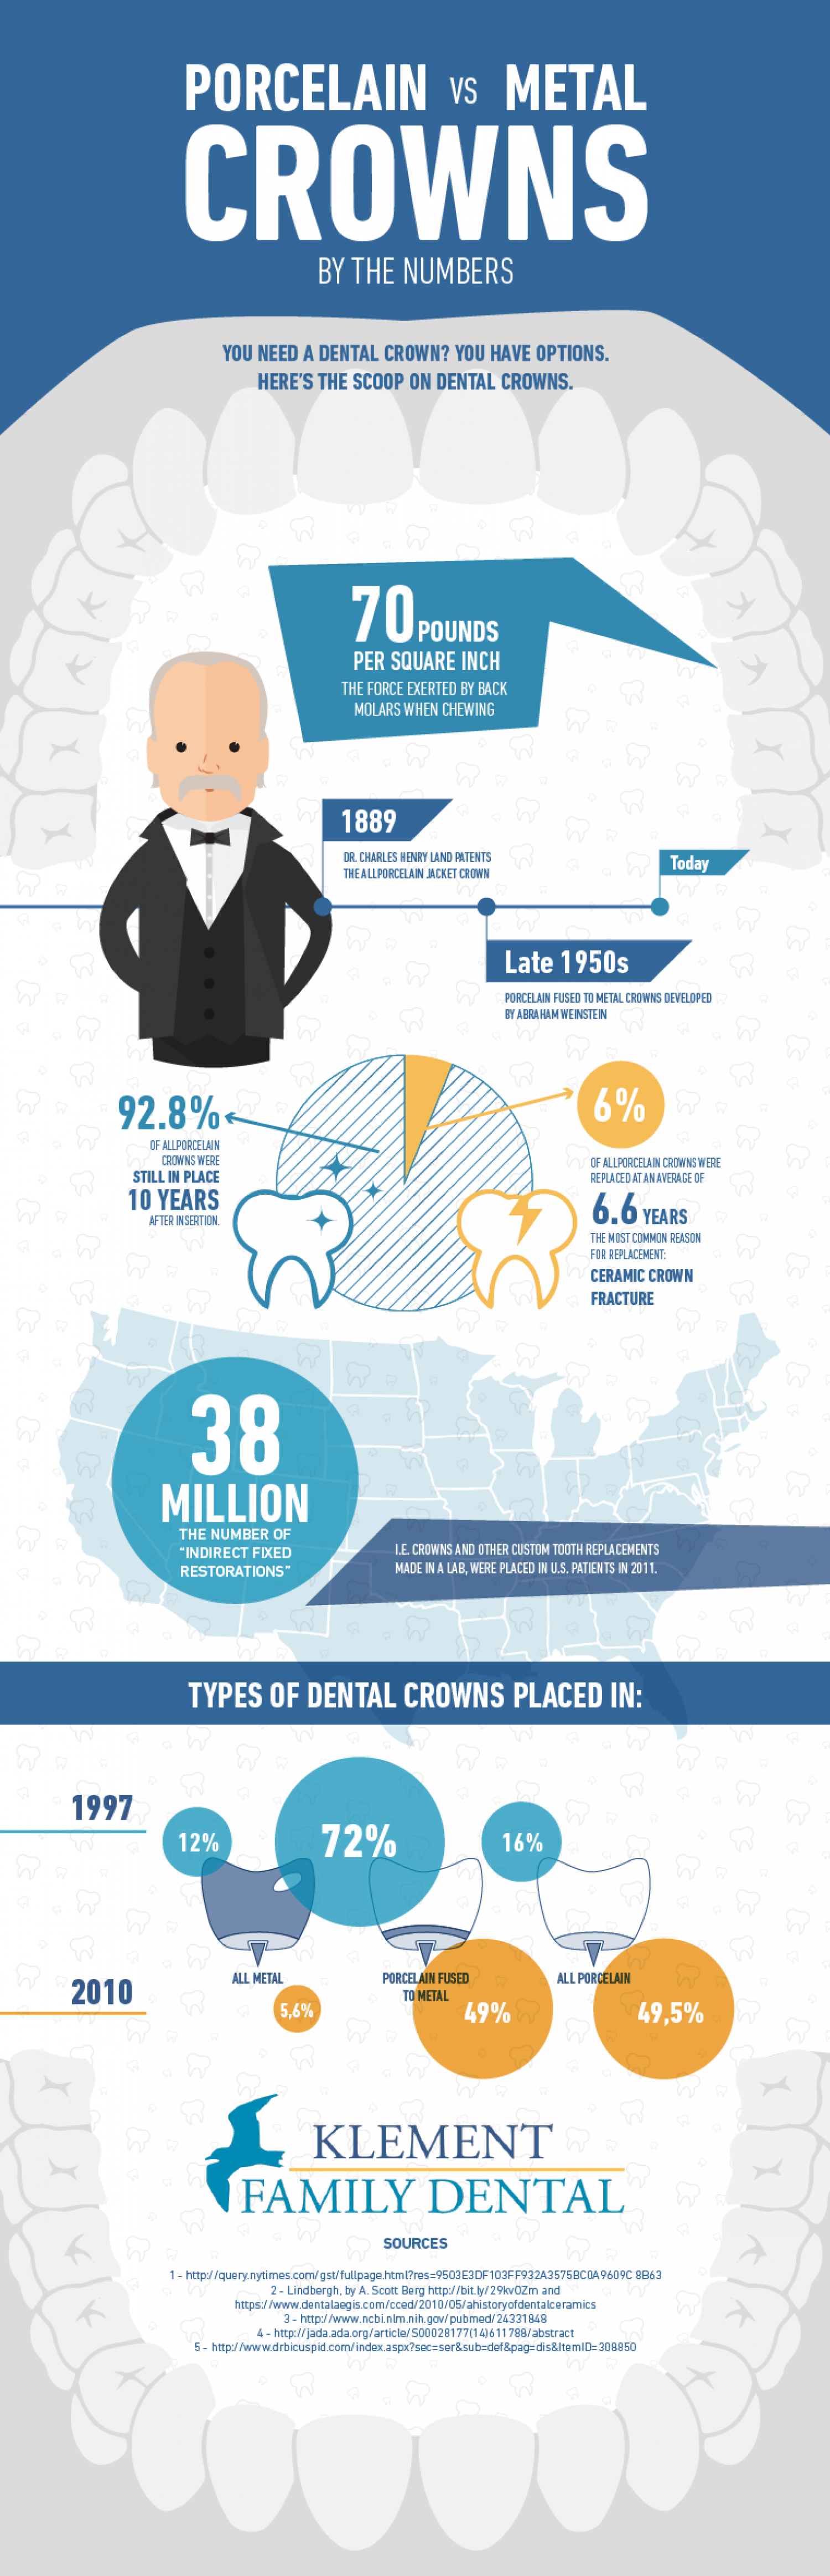 Porcelain vs metal crowns Infographic